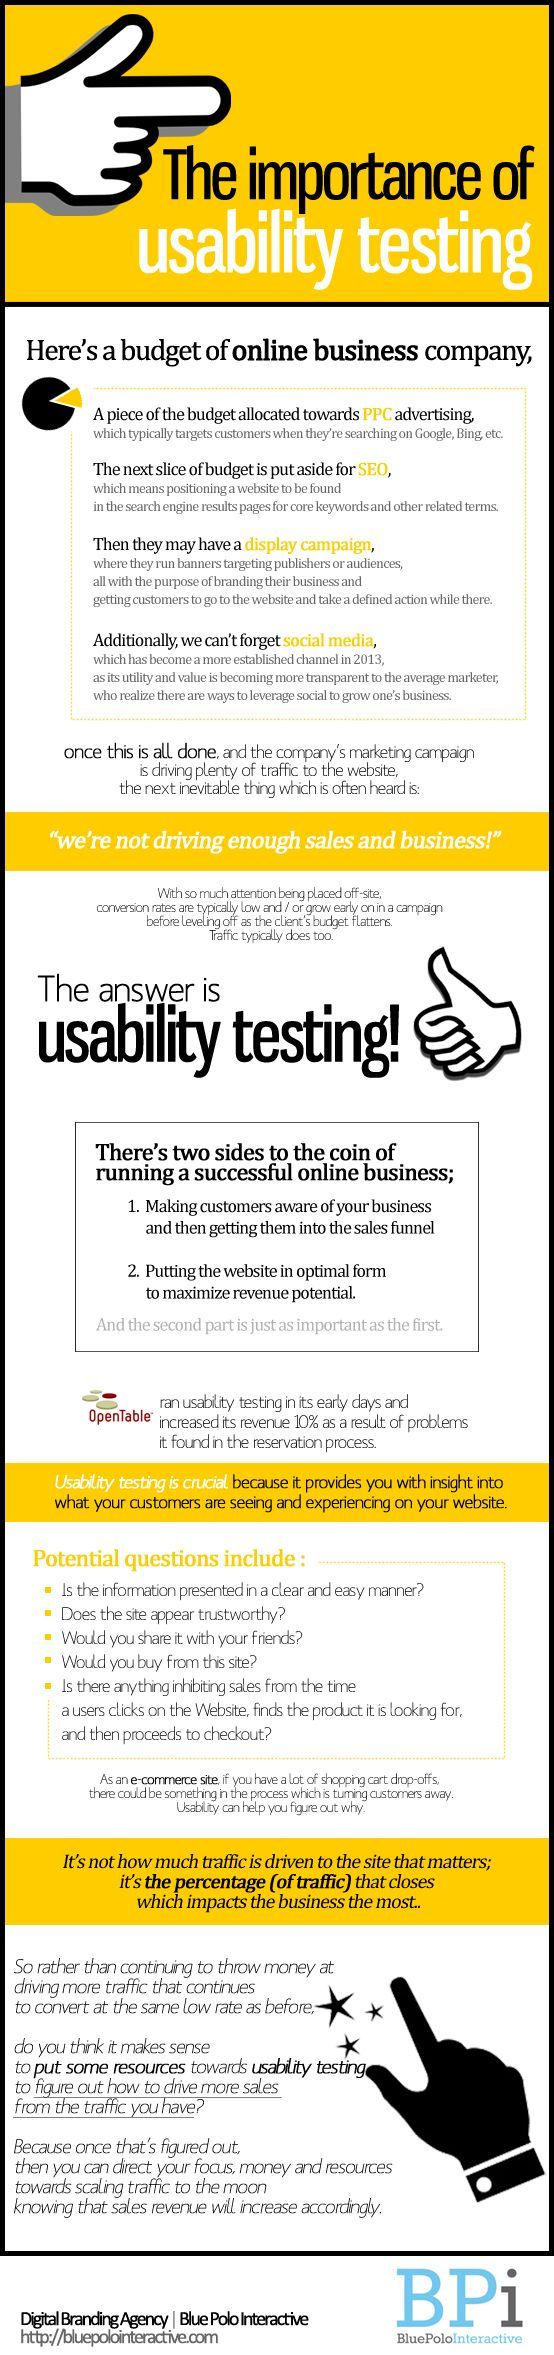 The importance of usability testing : #Usability #OnlineBusiness http://bluepolointeractive. If you like UX, design, or design thinking, check out theuxblog.com podcast https://itunes.apple.com/us/podcast/ux-blog-user-experience-design/id1127946001?mt=2